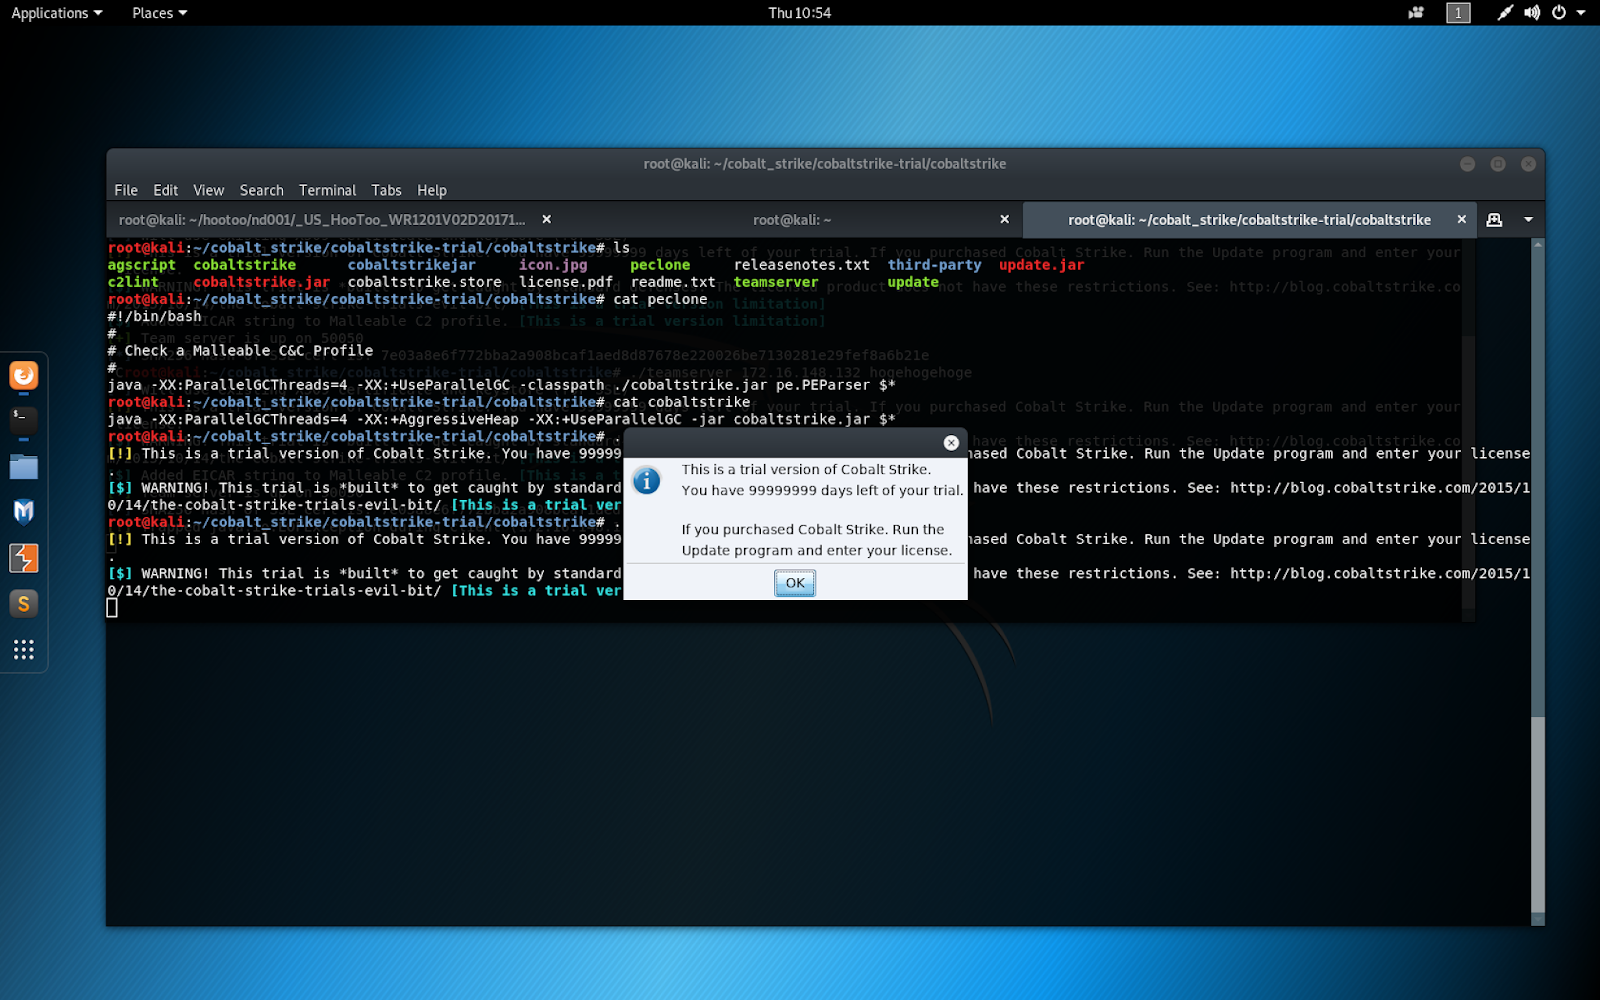 Cracking WPA2 without Deauthentication | kphongag's blog